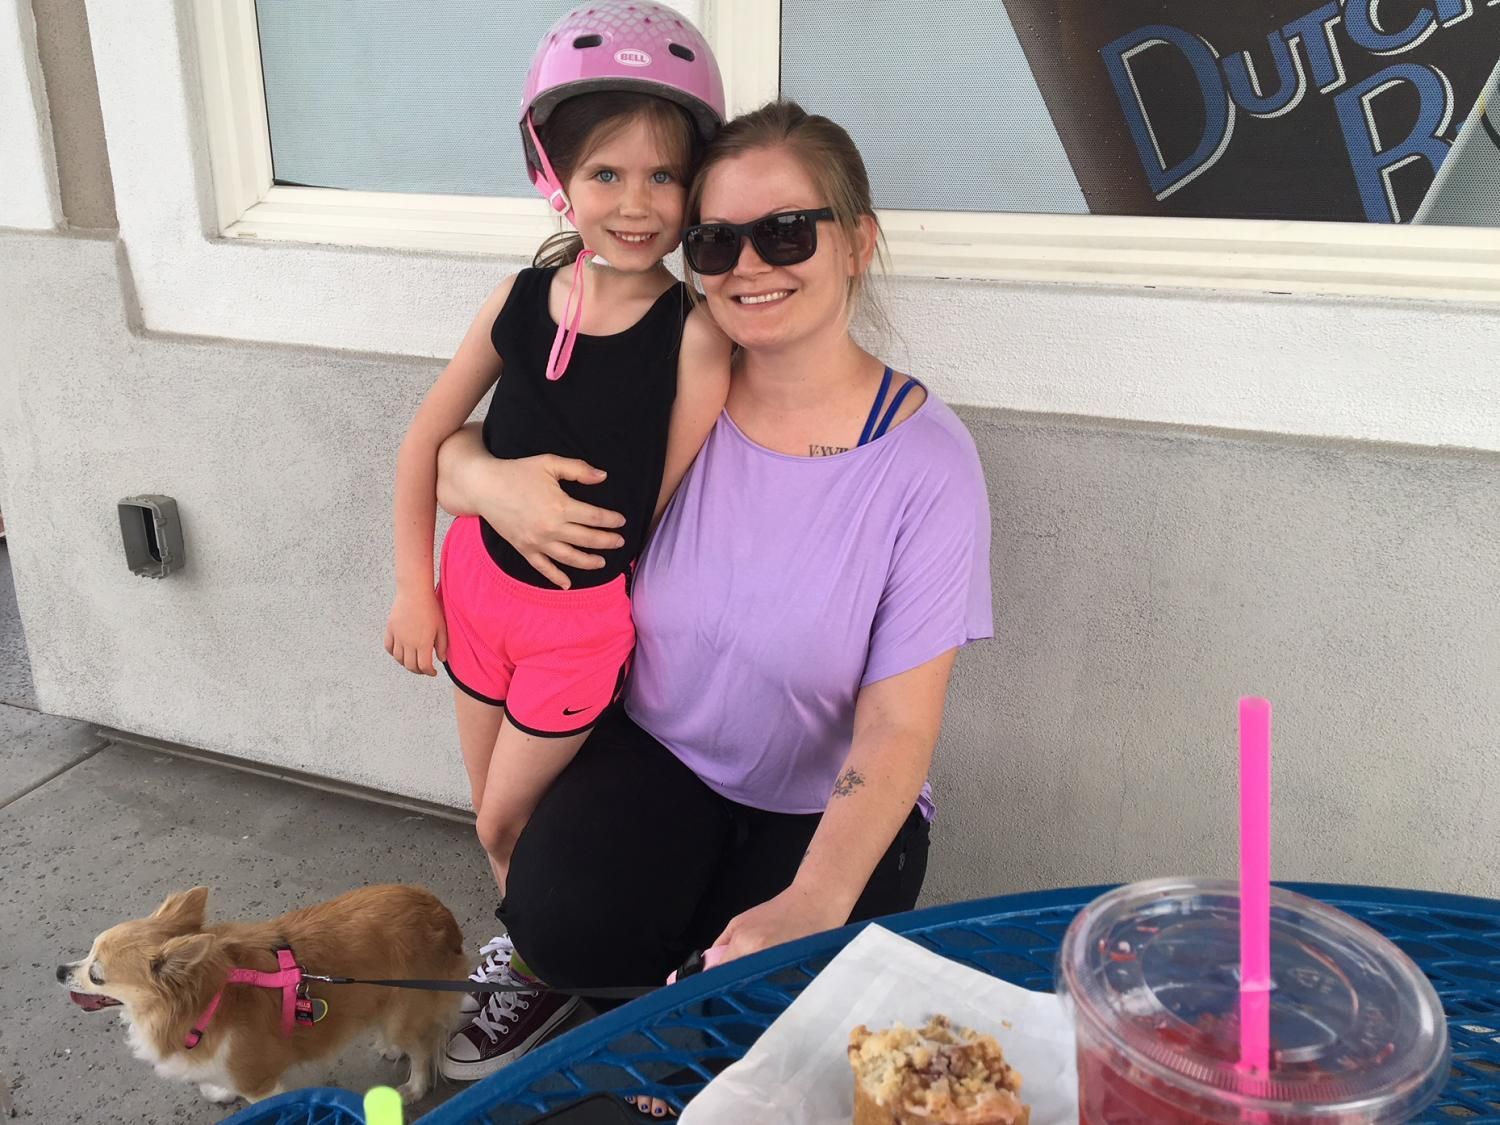 Erin Flanagan and her daughter